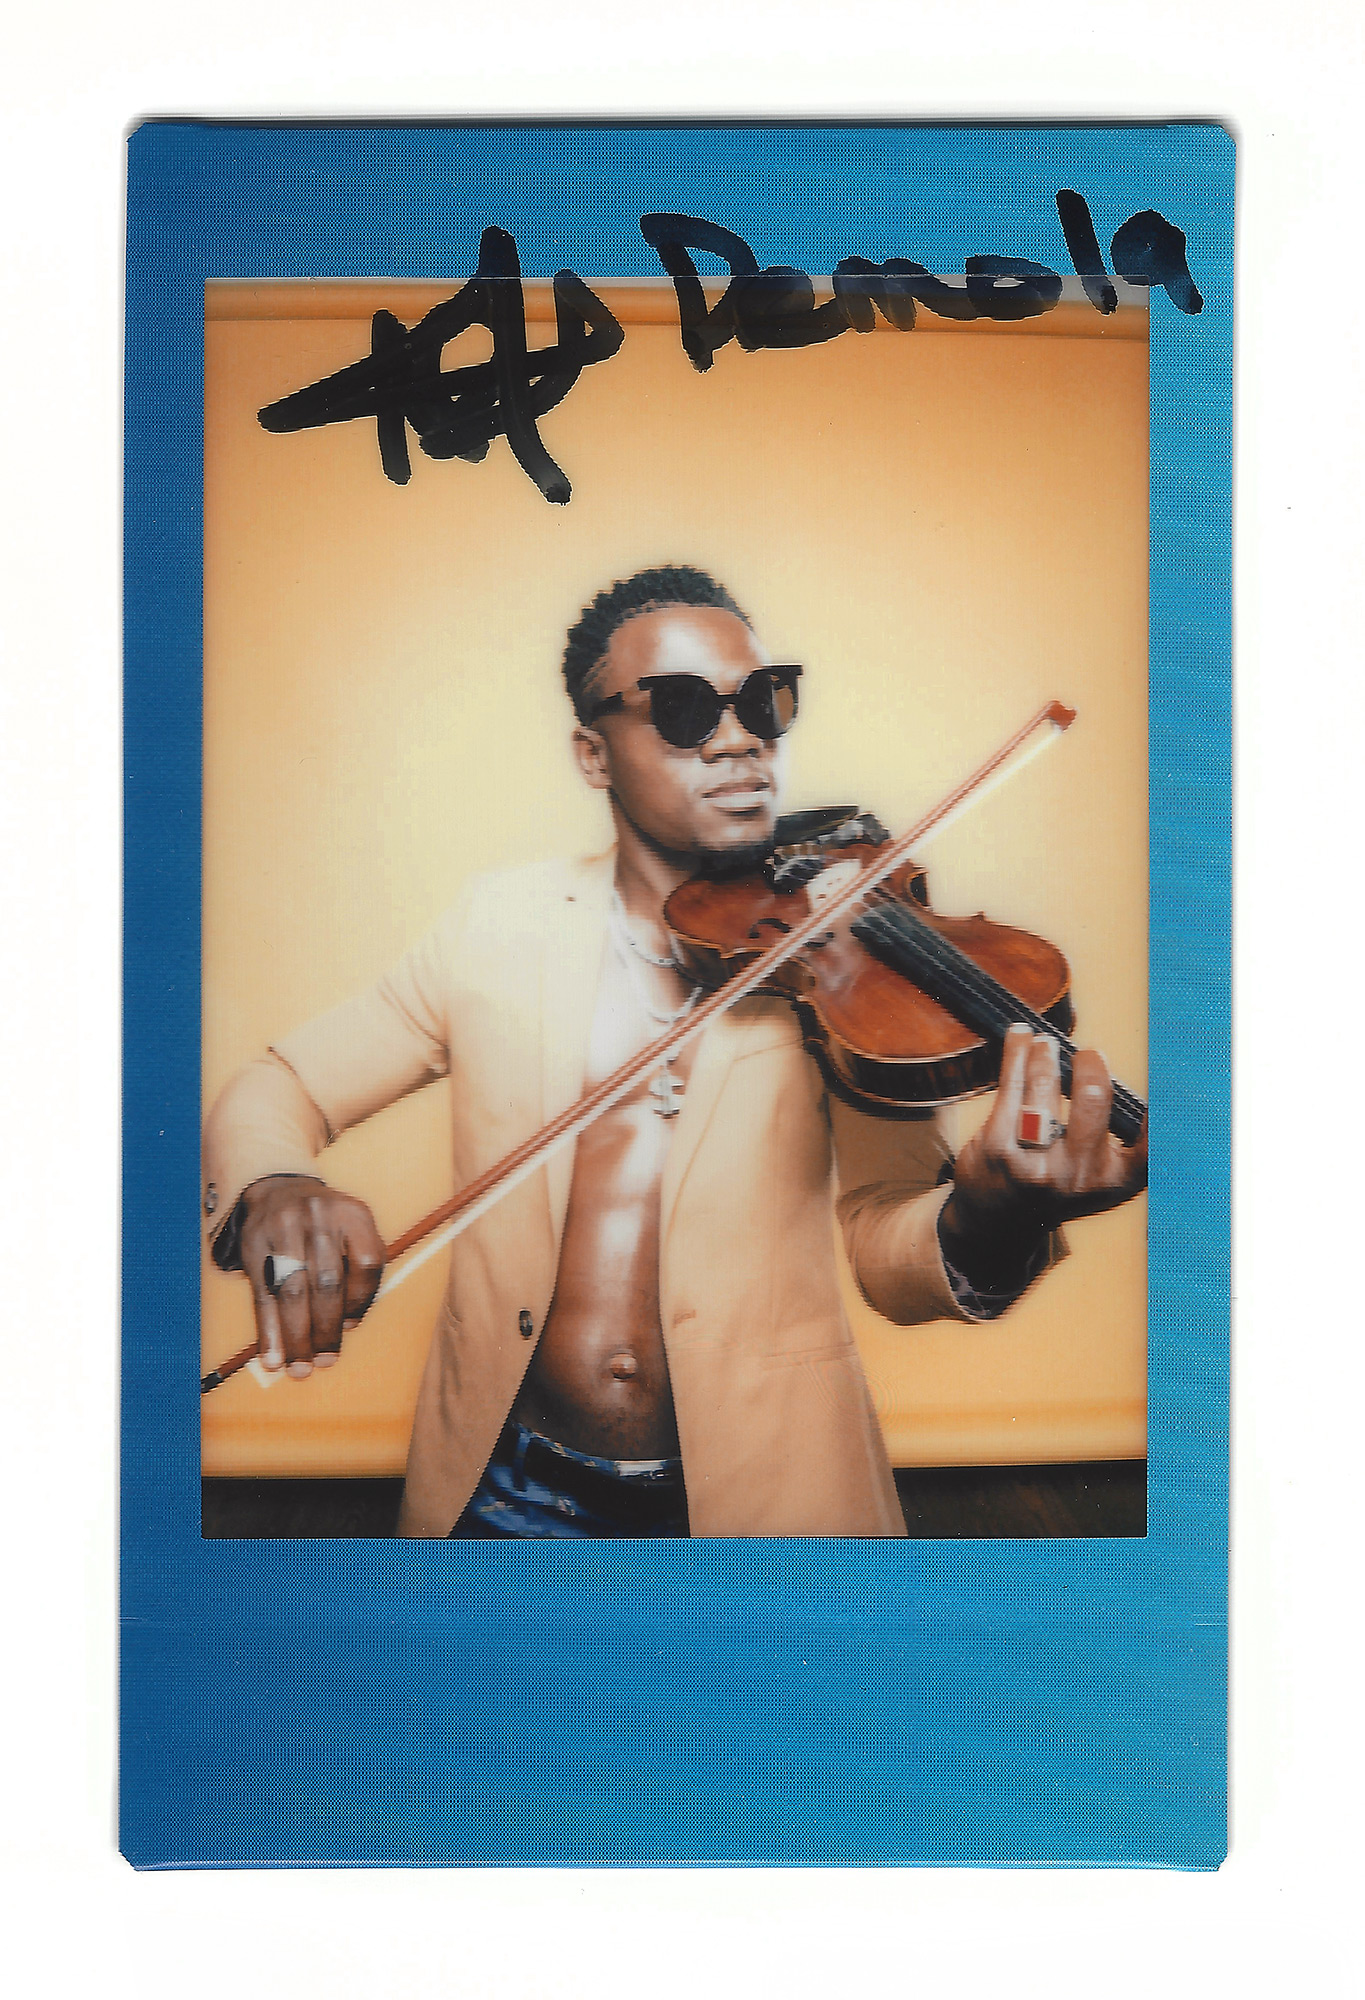 Demola, African violinist and hip hop artist, photographed in the Todd Spoth Photography studios in Houston, Texas by editorial and commercial photographer, Todd Spoth.